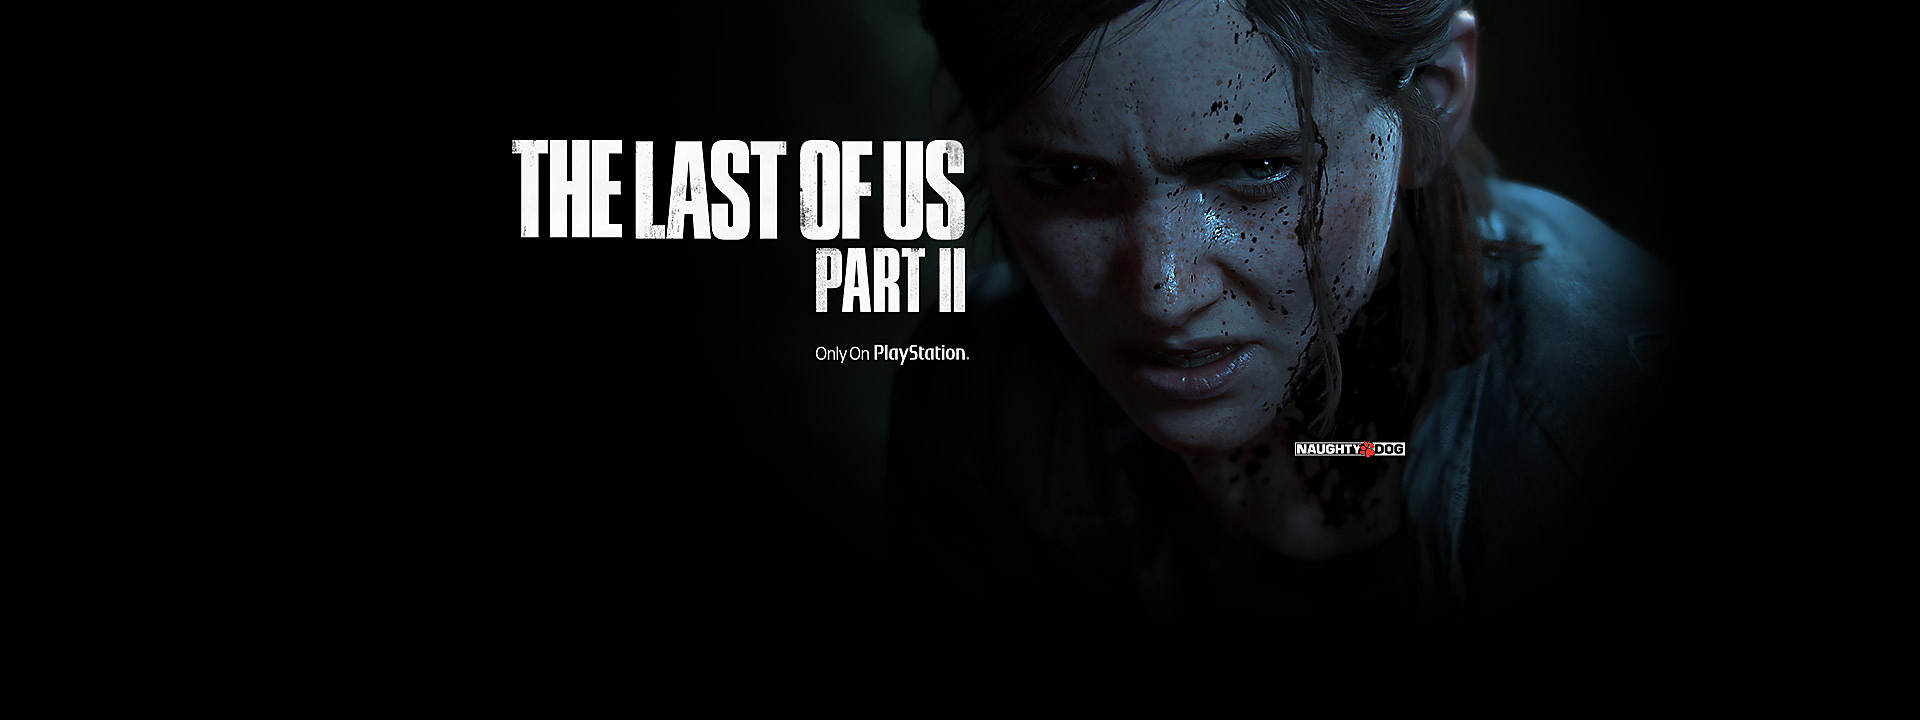 The Last of Us Part II - Now Available